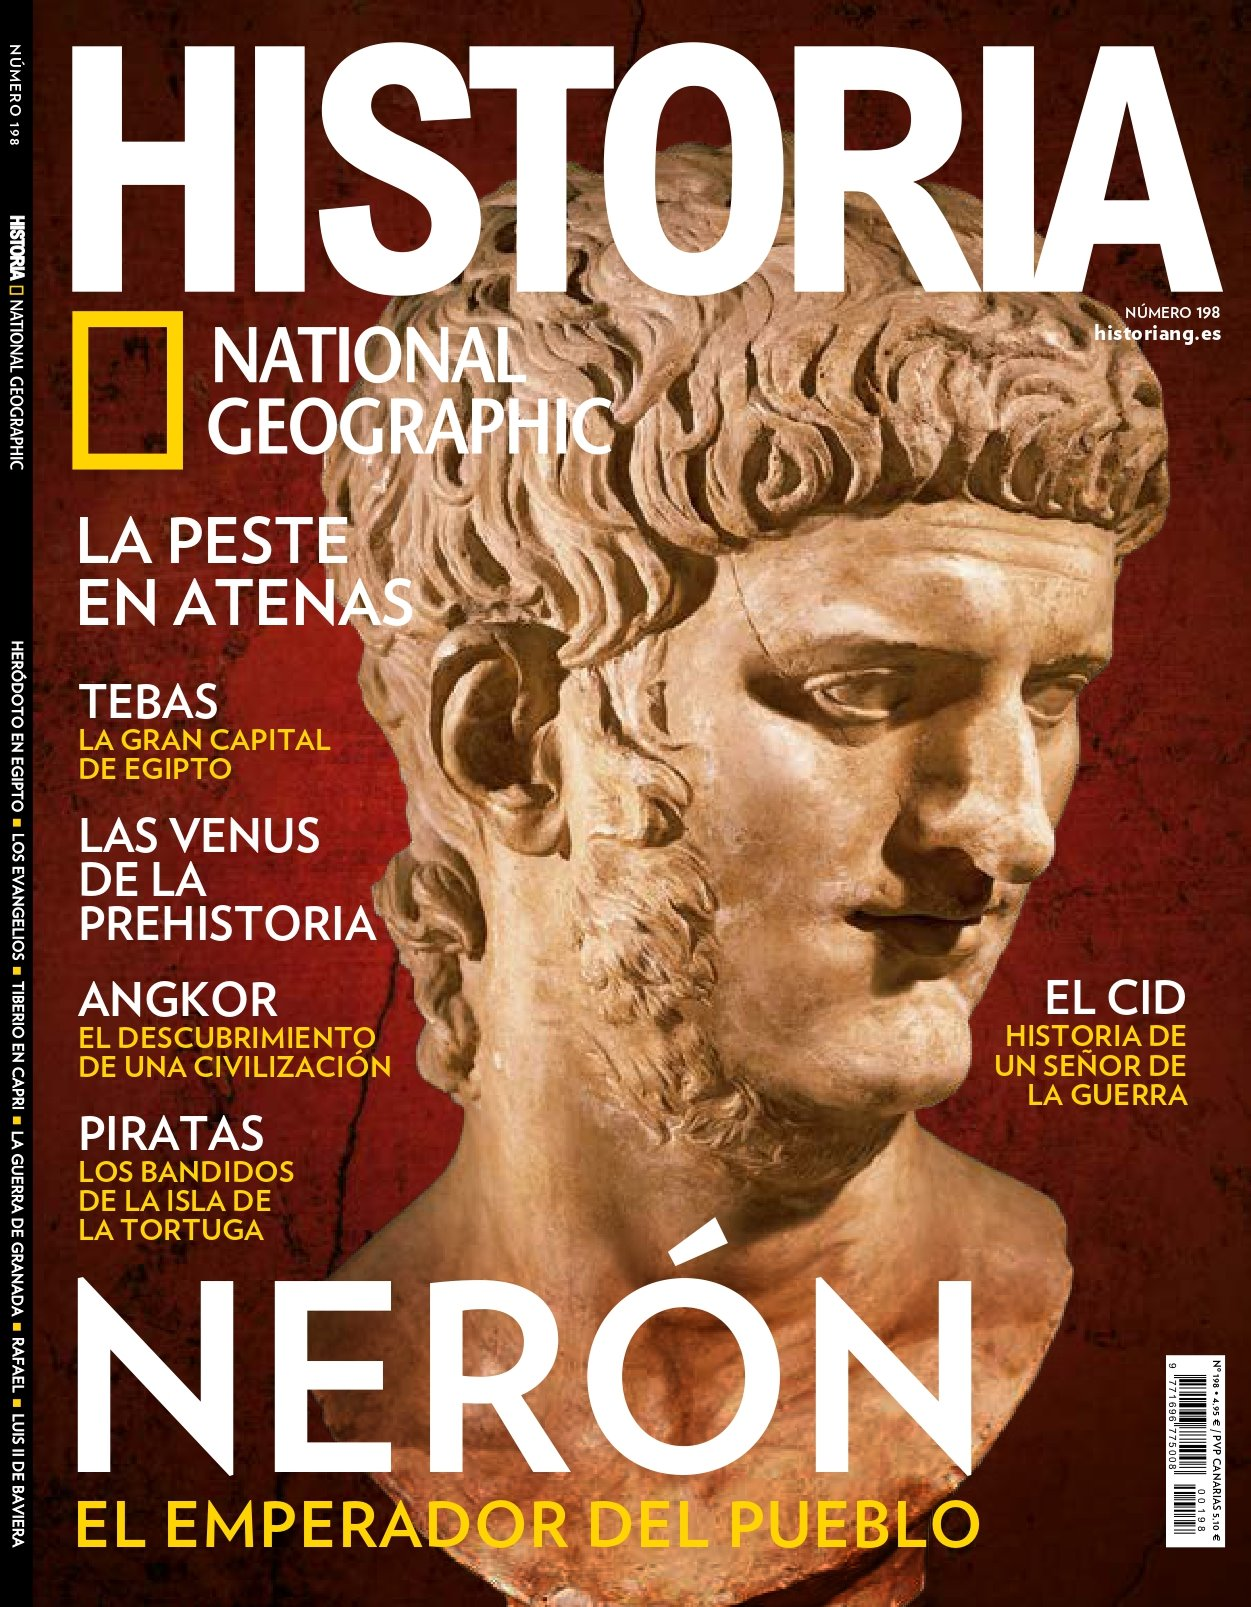 Historia National Geographic 198